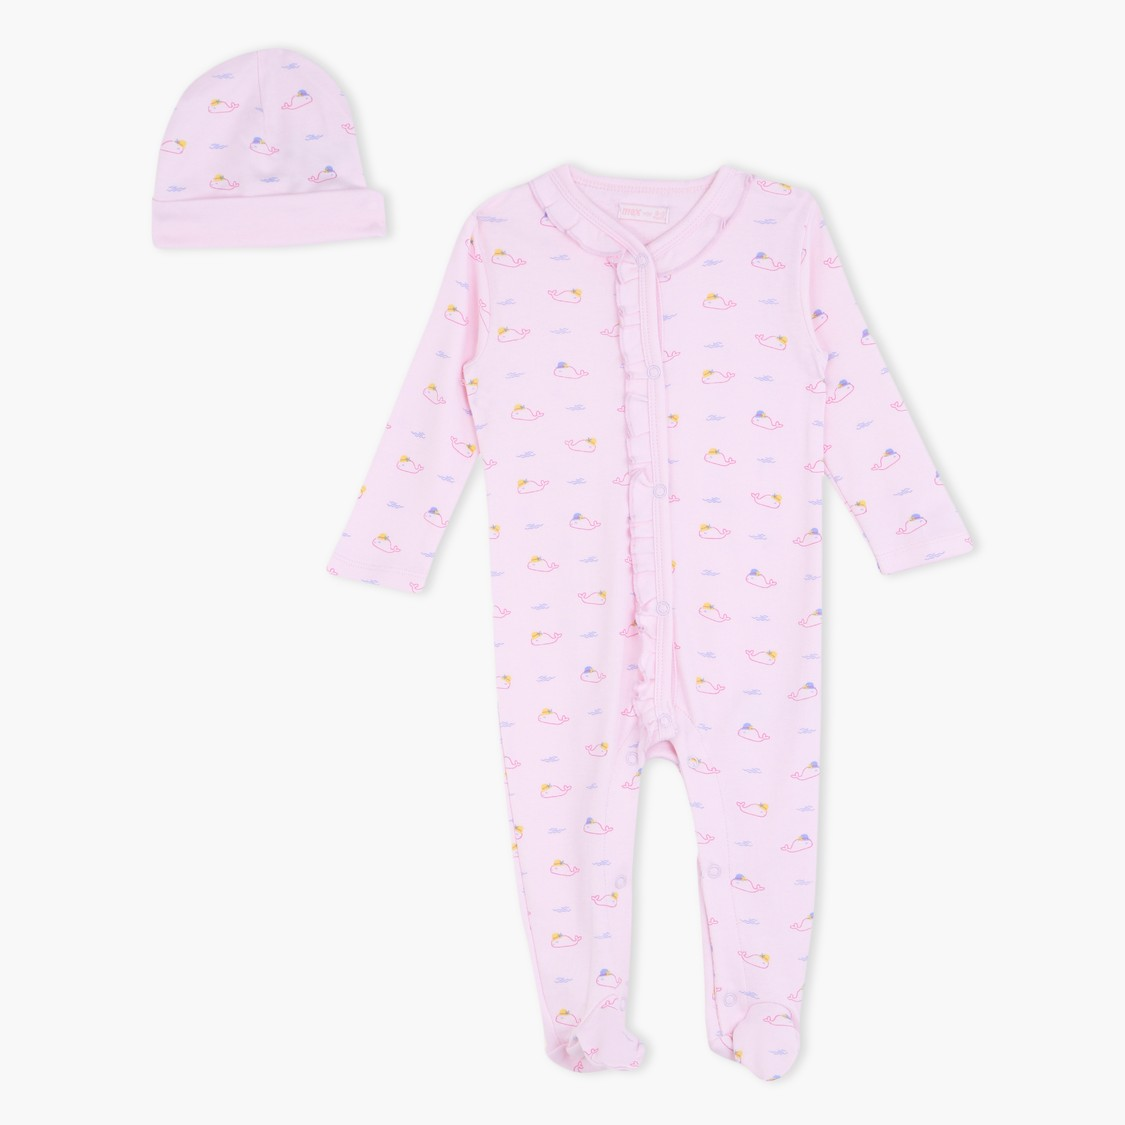 Printed Sleepsuit and Cap Set